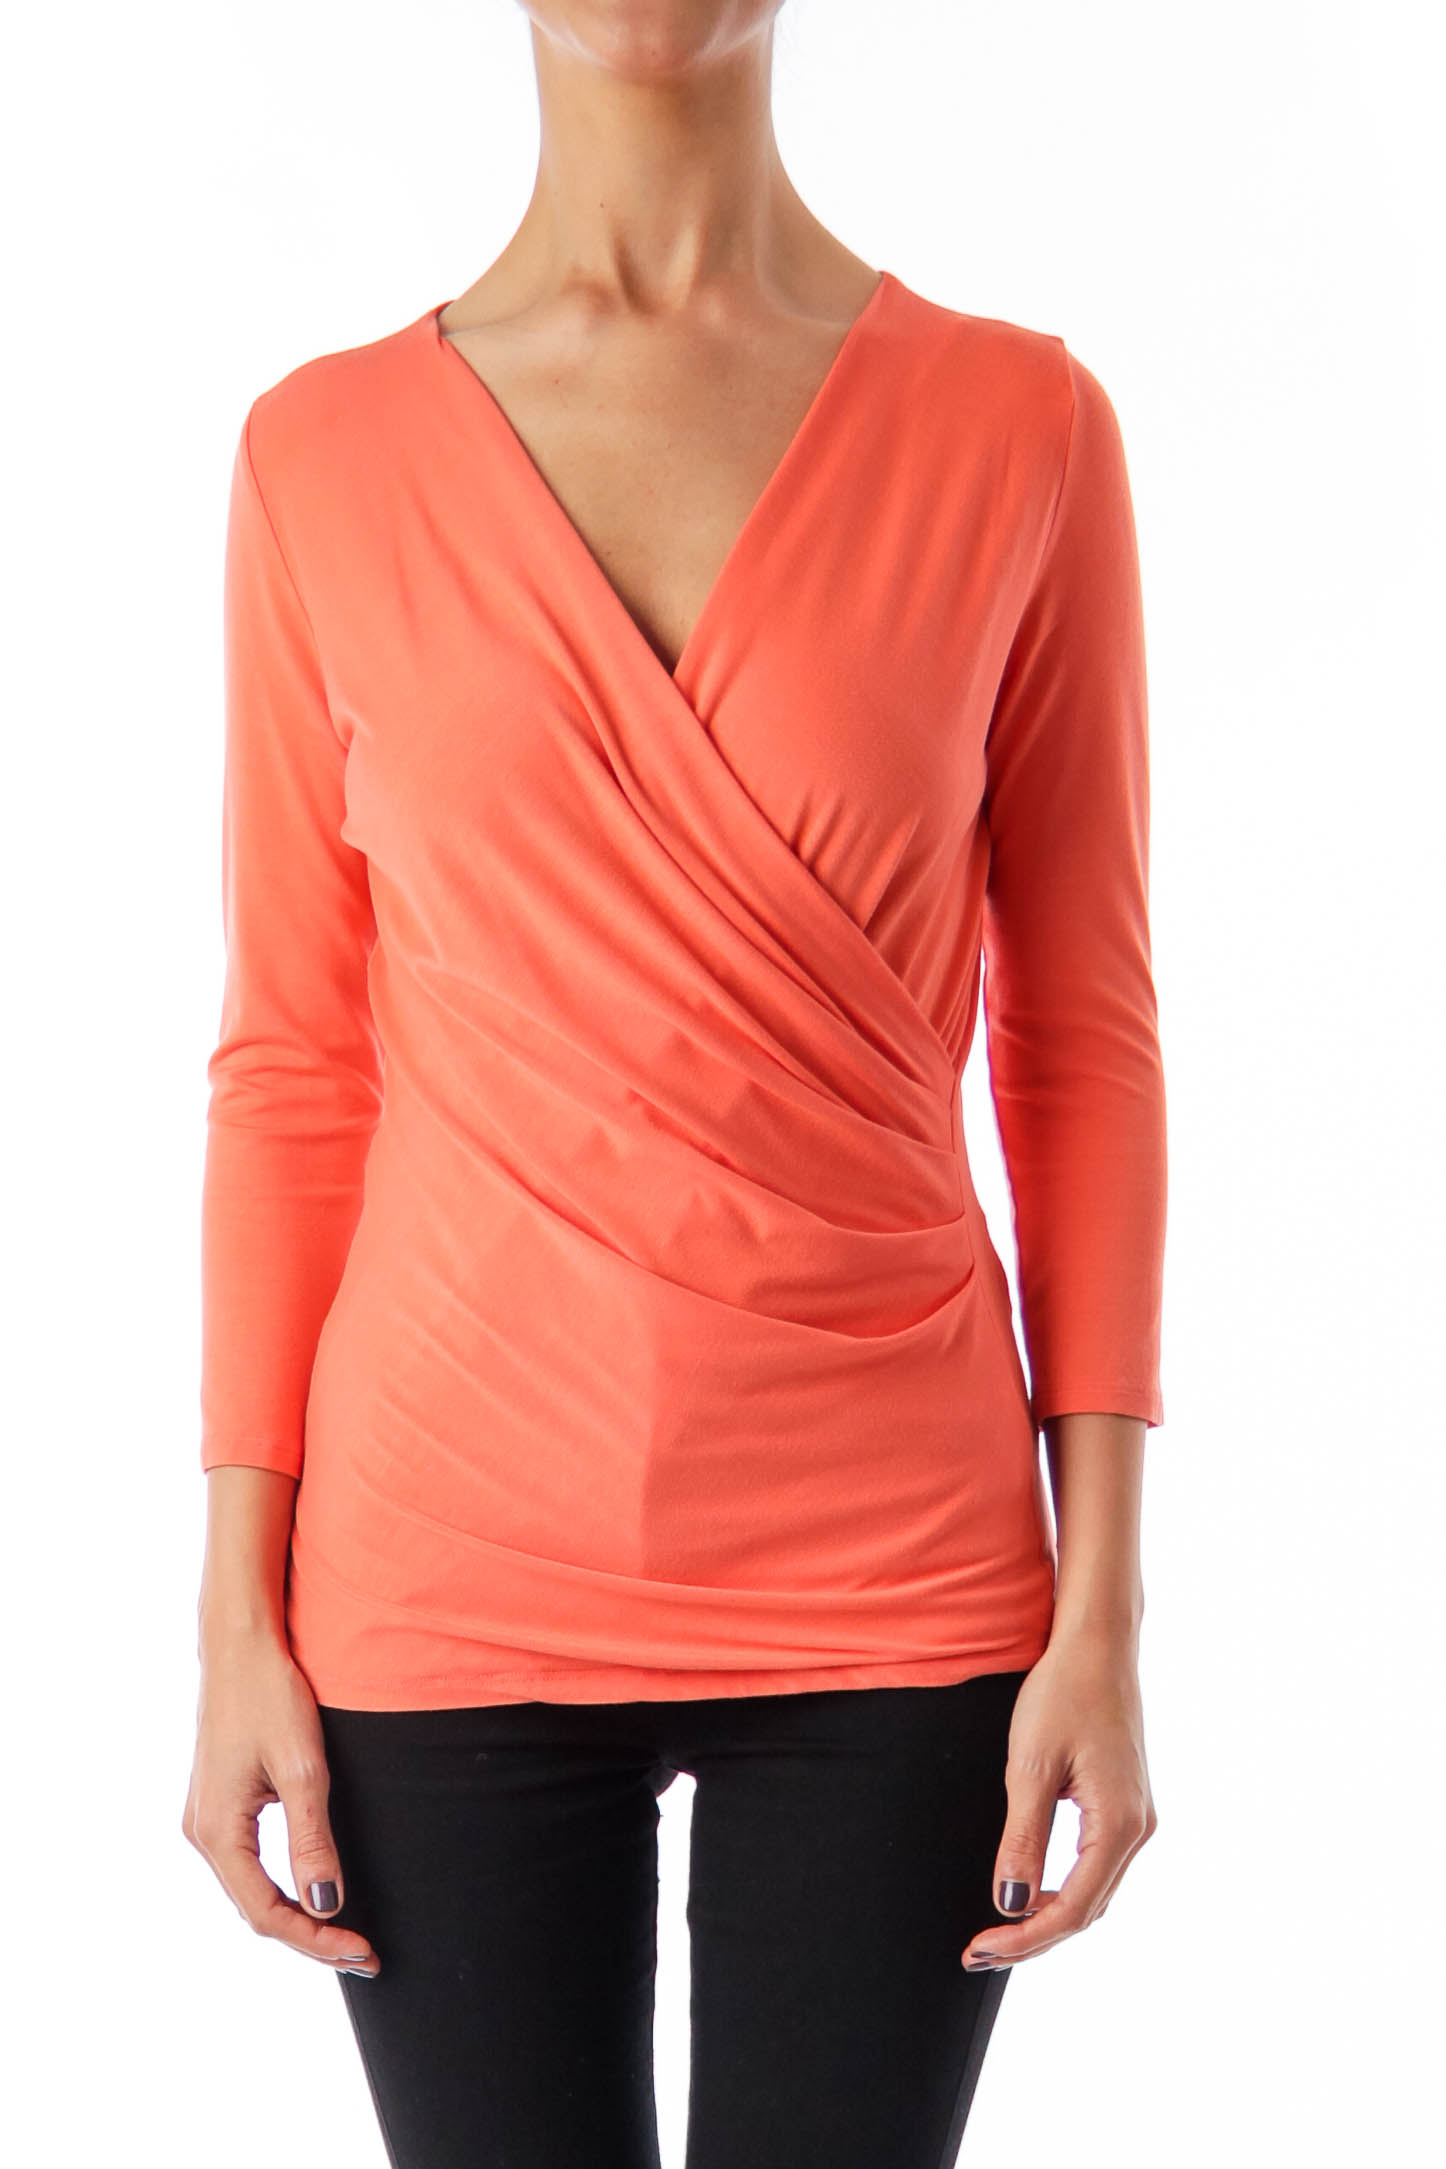 Peach V-neck 'Caprice' Top